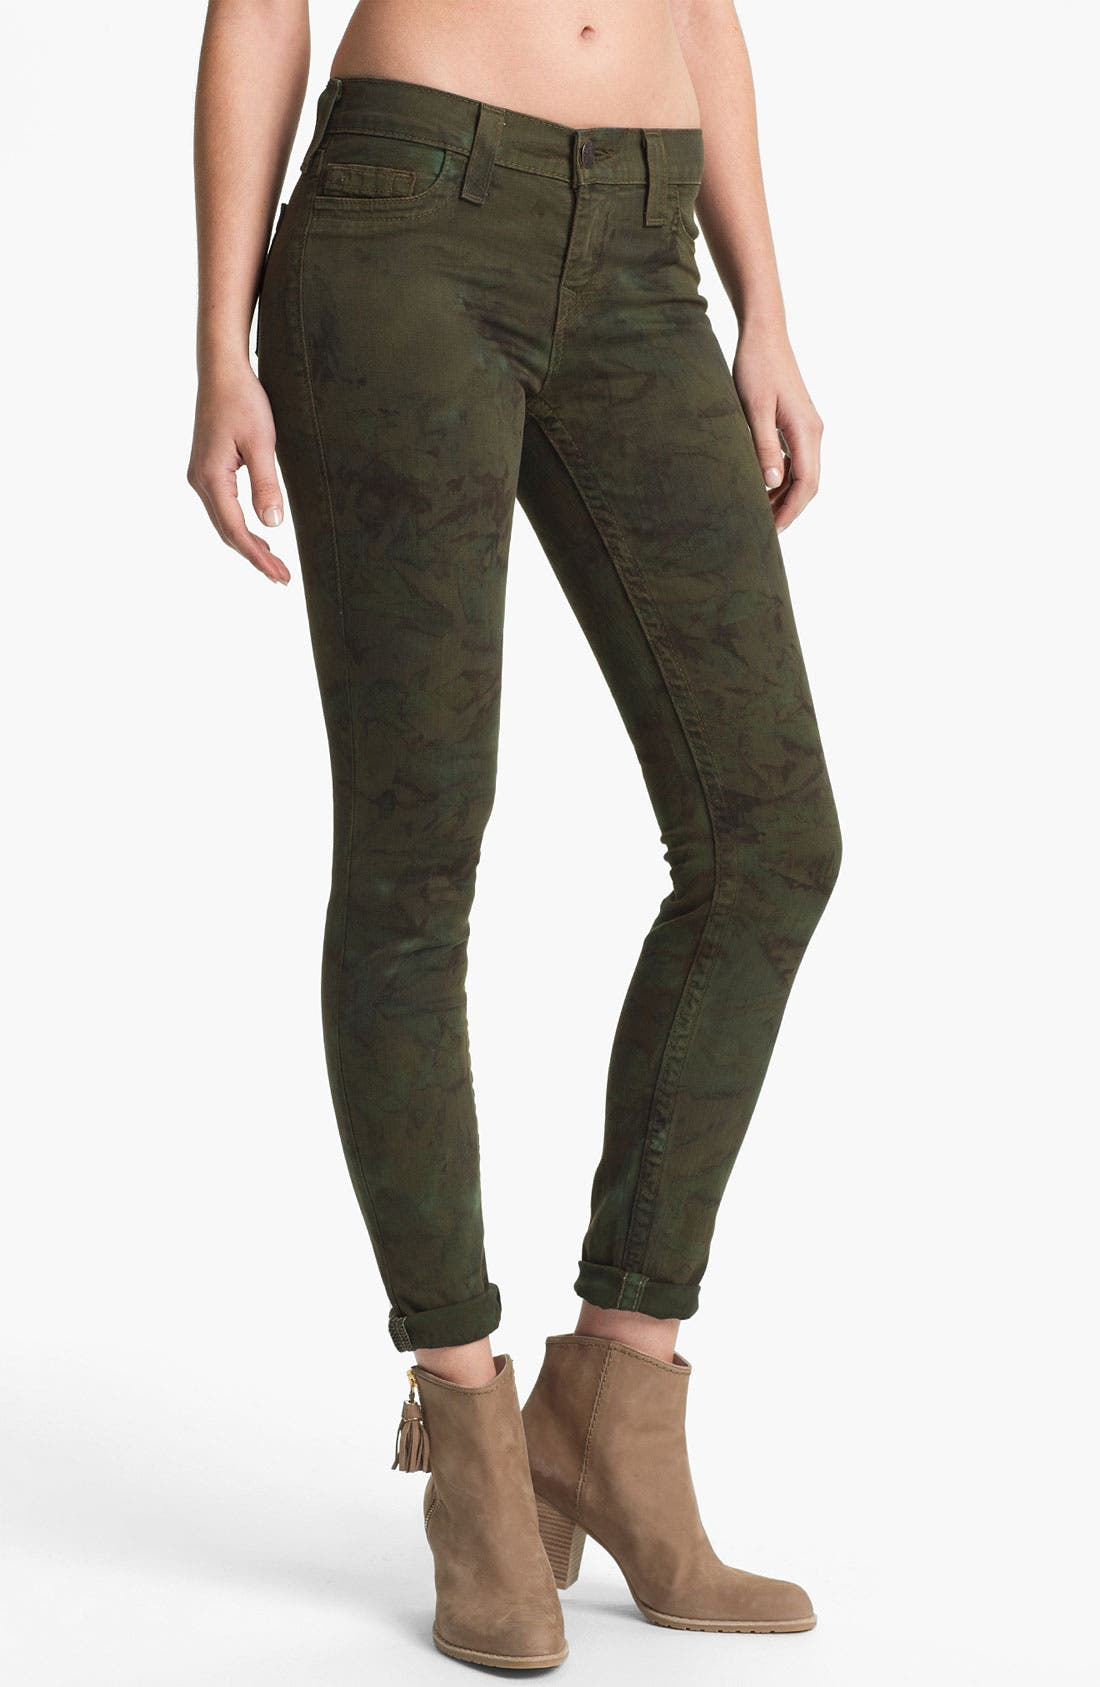 Alternate Image 1 Selected - True Religion Brand Jeans 'Halle' Skinny Stretch Jeans (Military)